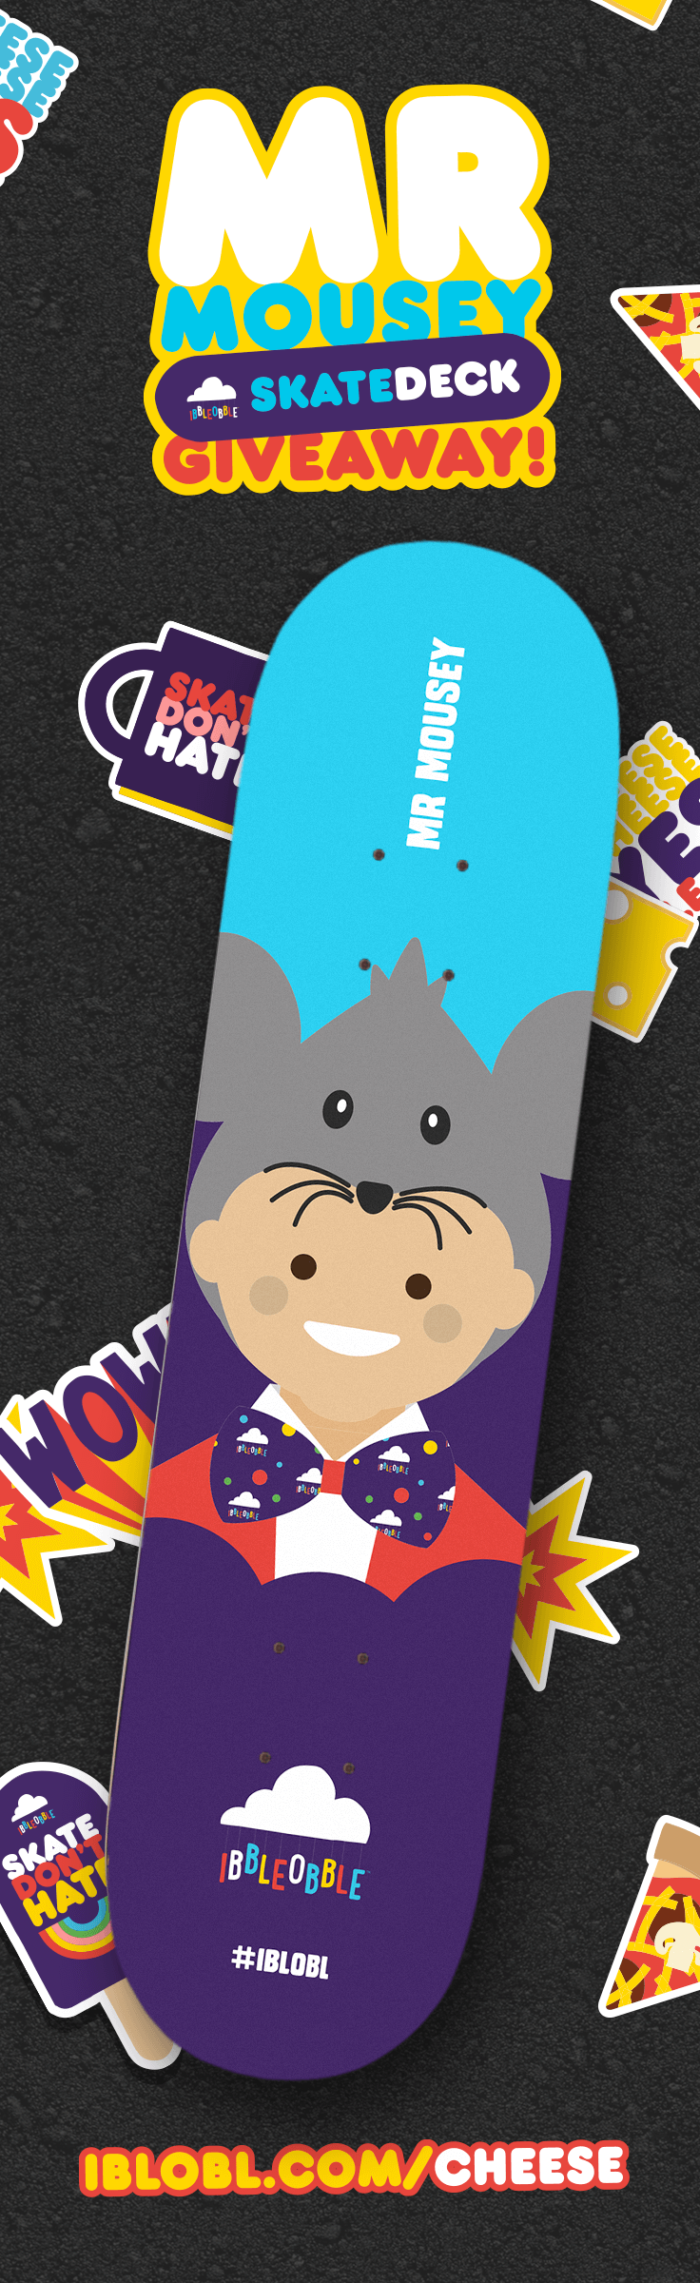 Mr Mousey Skate Deck Giveaway